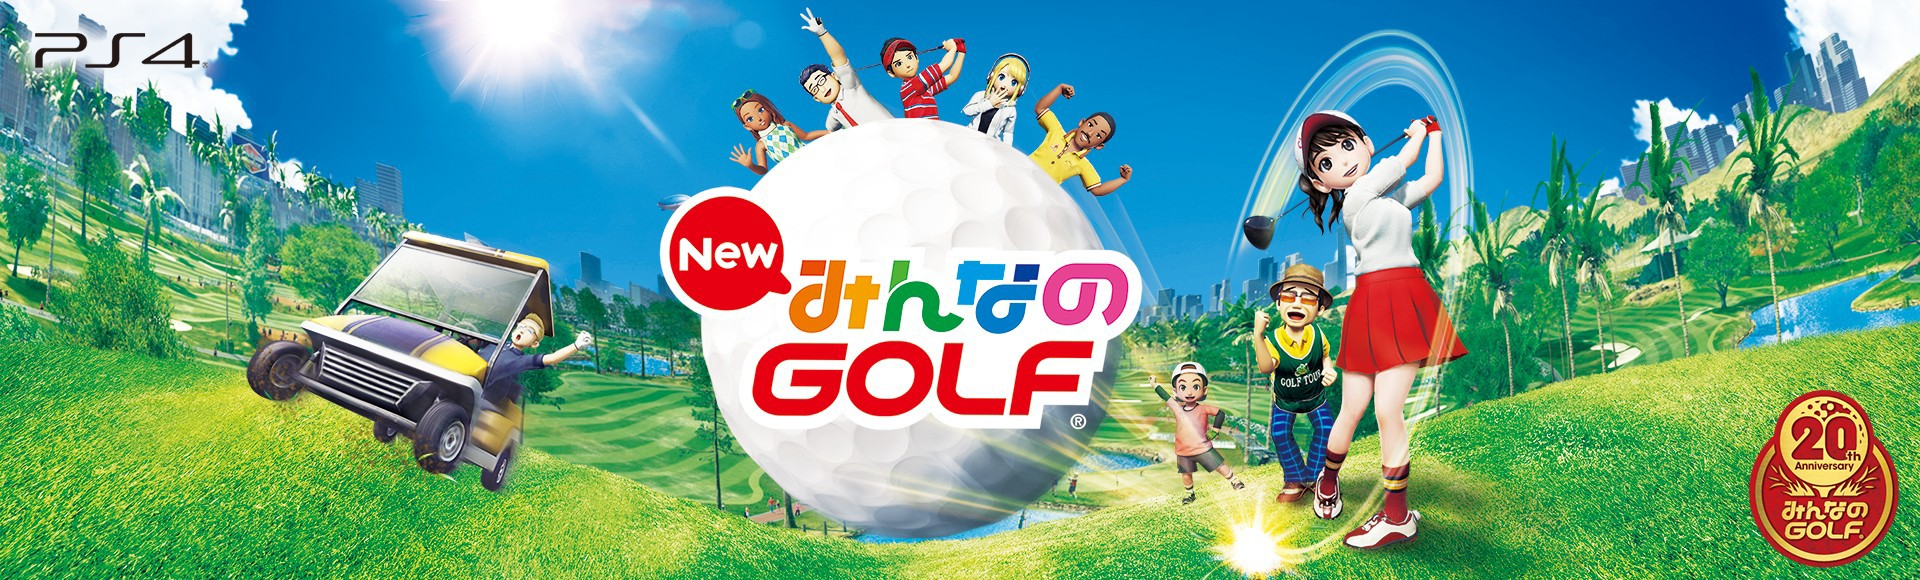 PlayStation®4 New みんなのGOLF